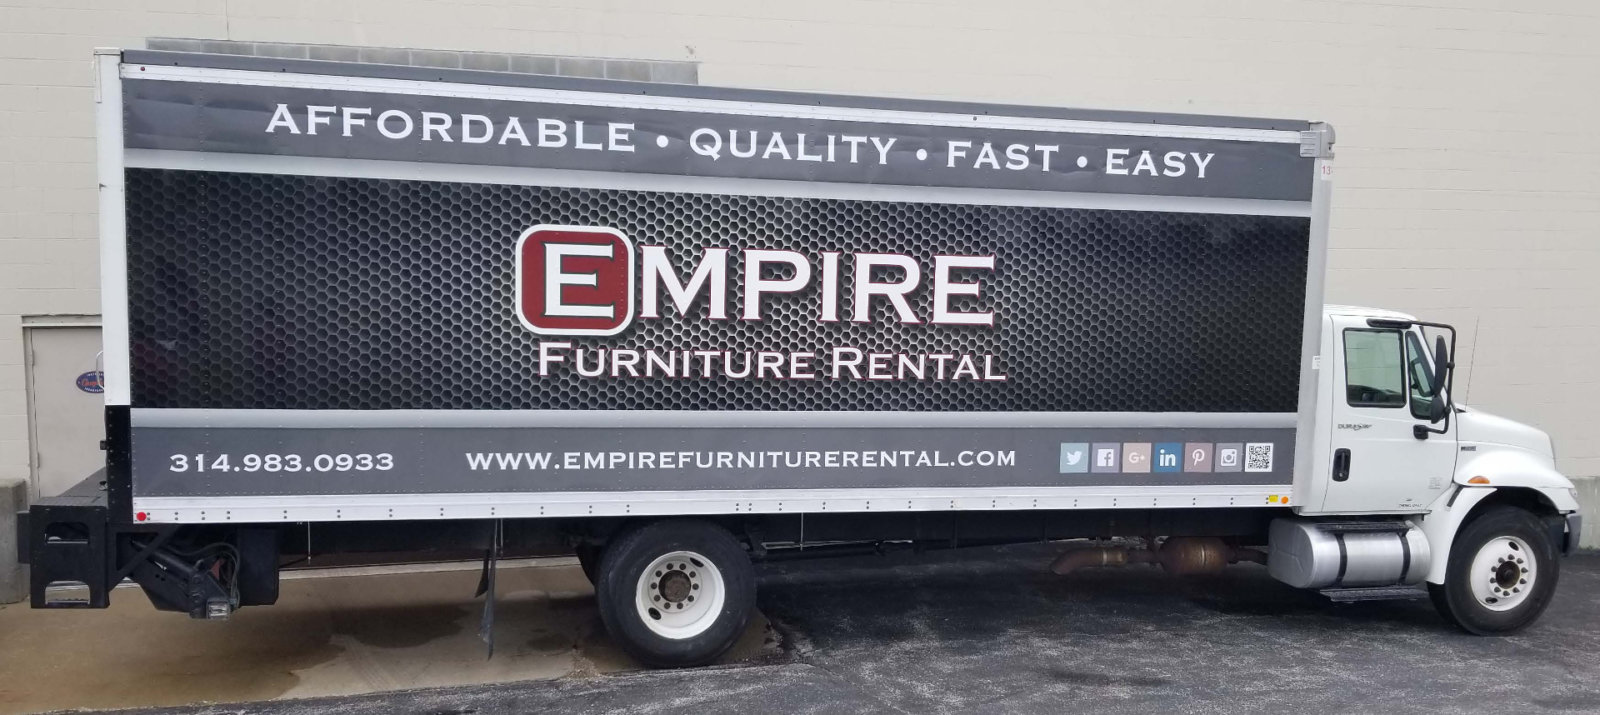 St. Louis Car Wraps Designed To Make Your Brand Stand Out